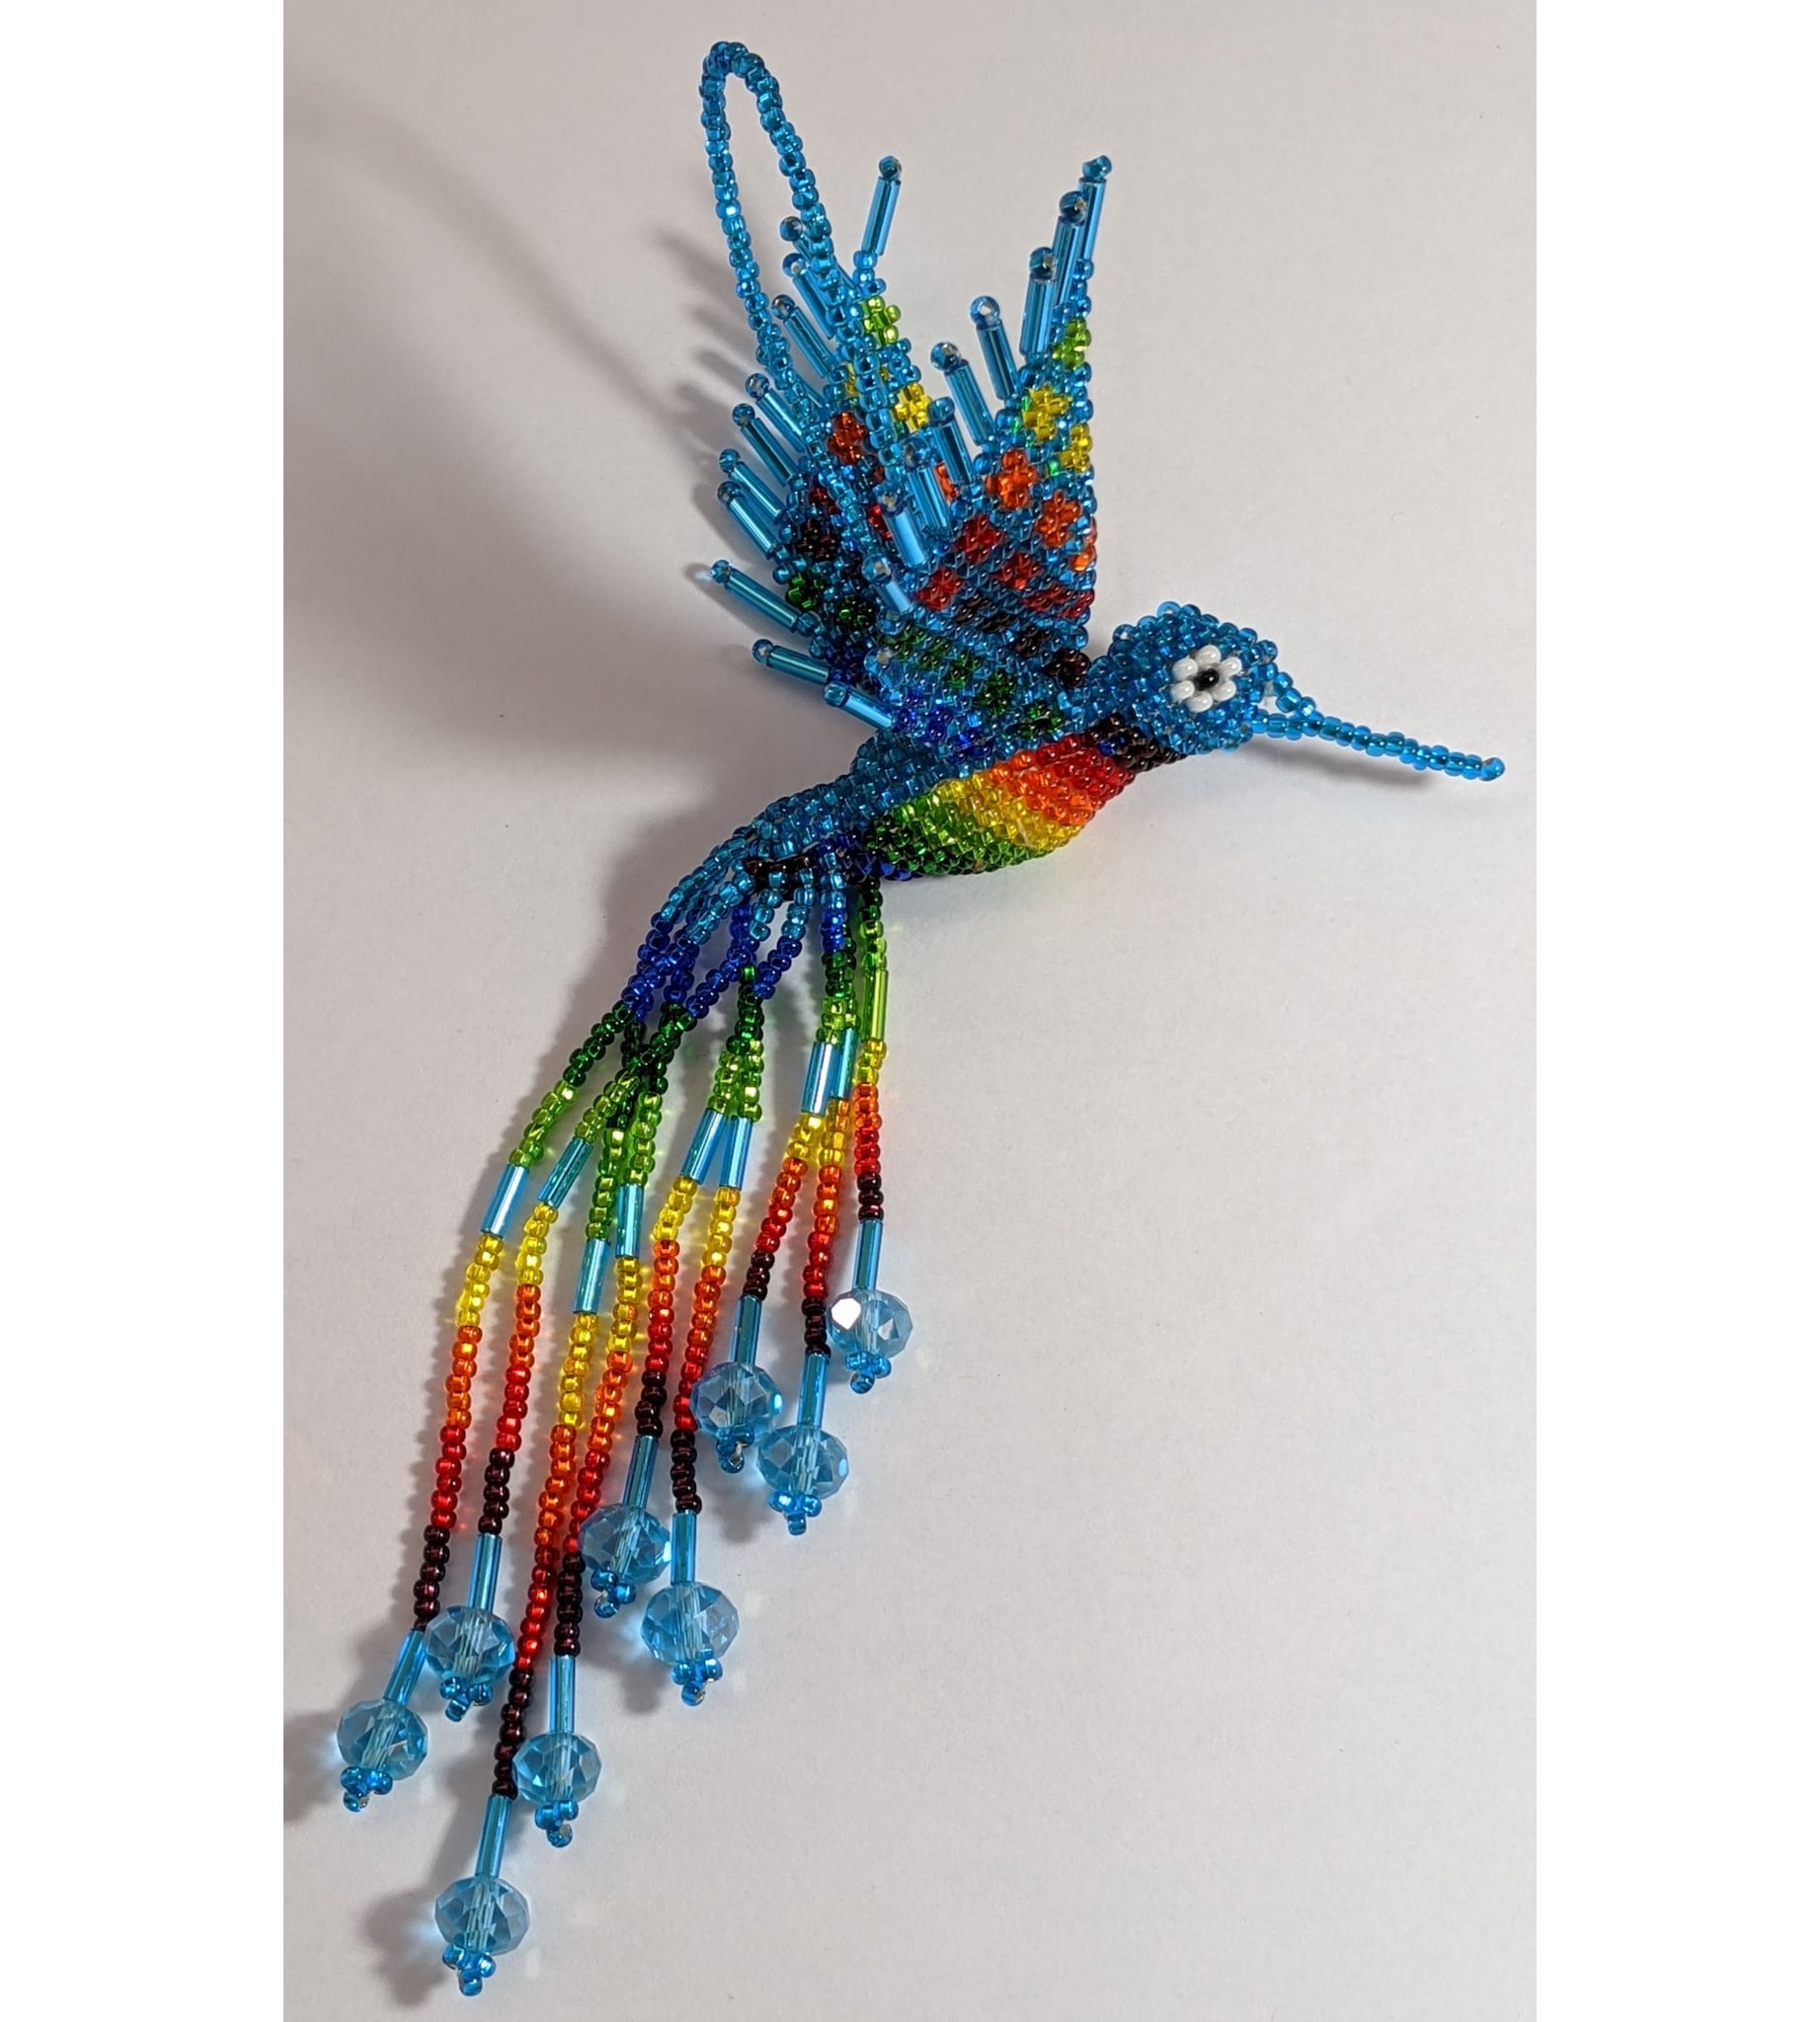 Hummingbird Beaded Ornament - Rainbow with Celestial Blue